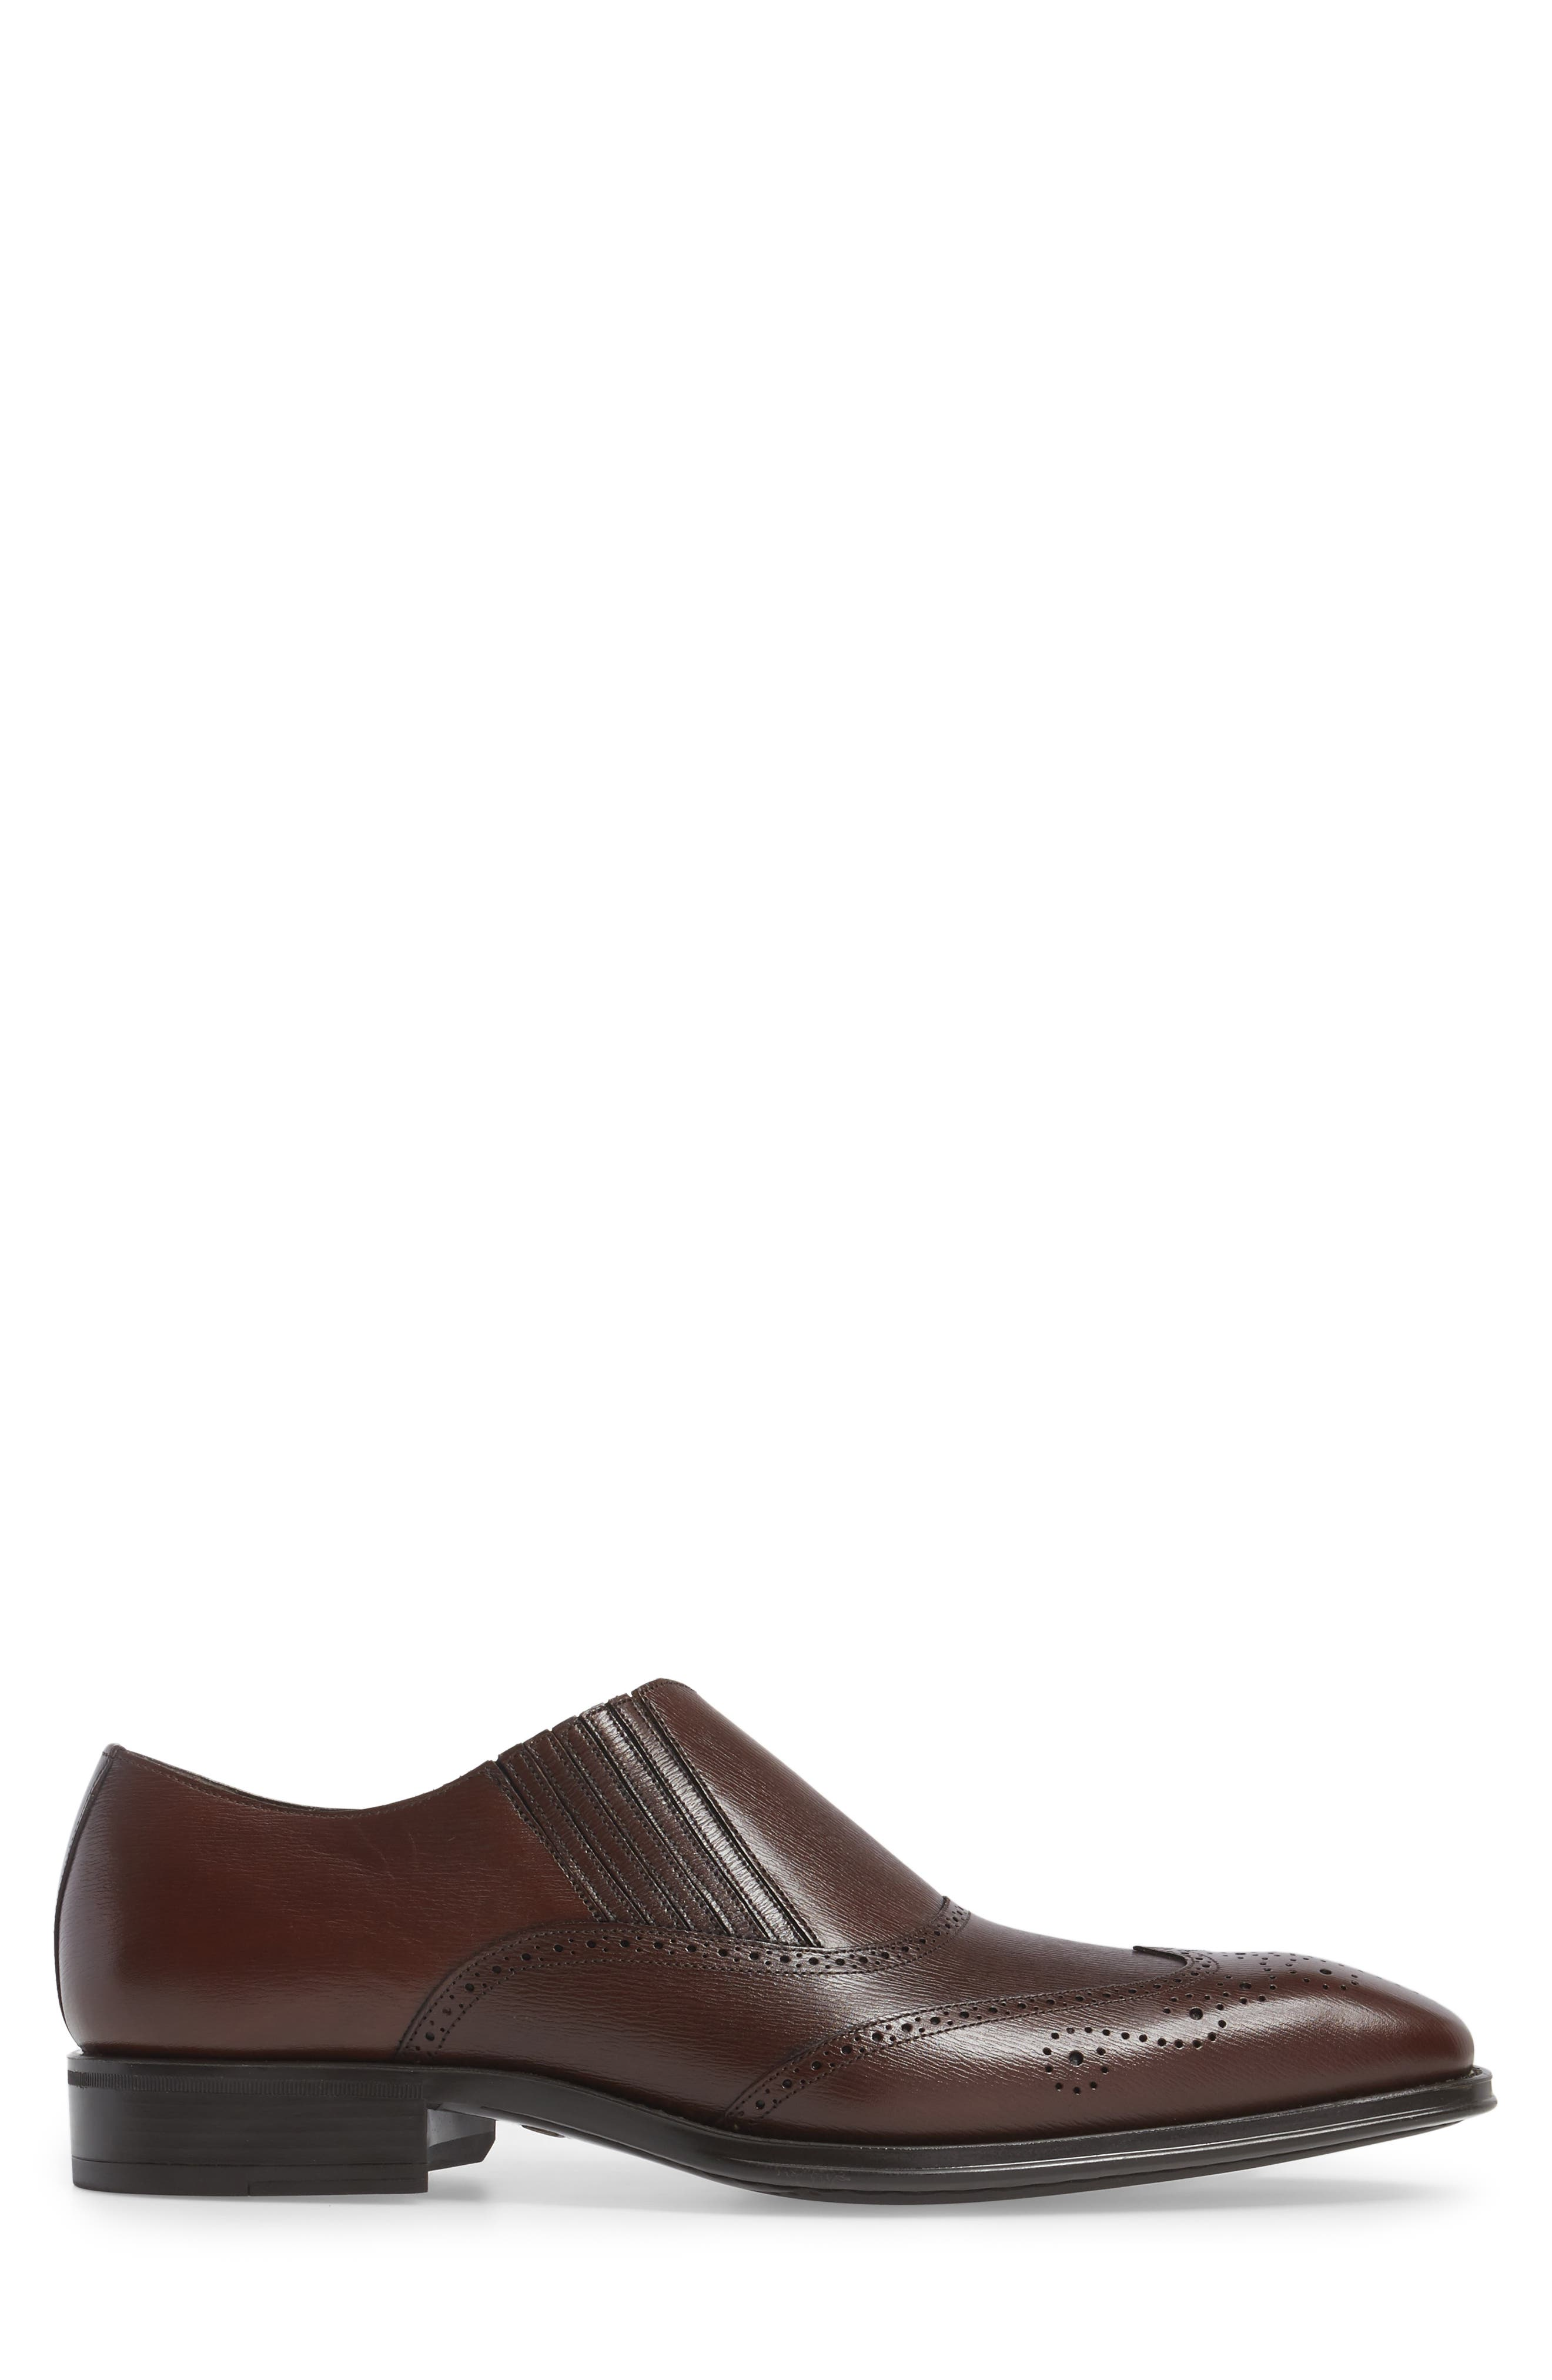 Alternate Image 3  - Mezlan Rioja Venetian Loafer (Men)